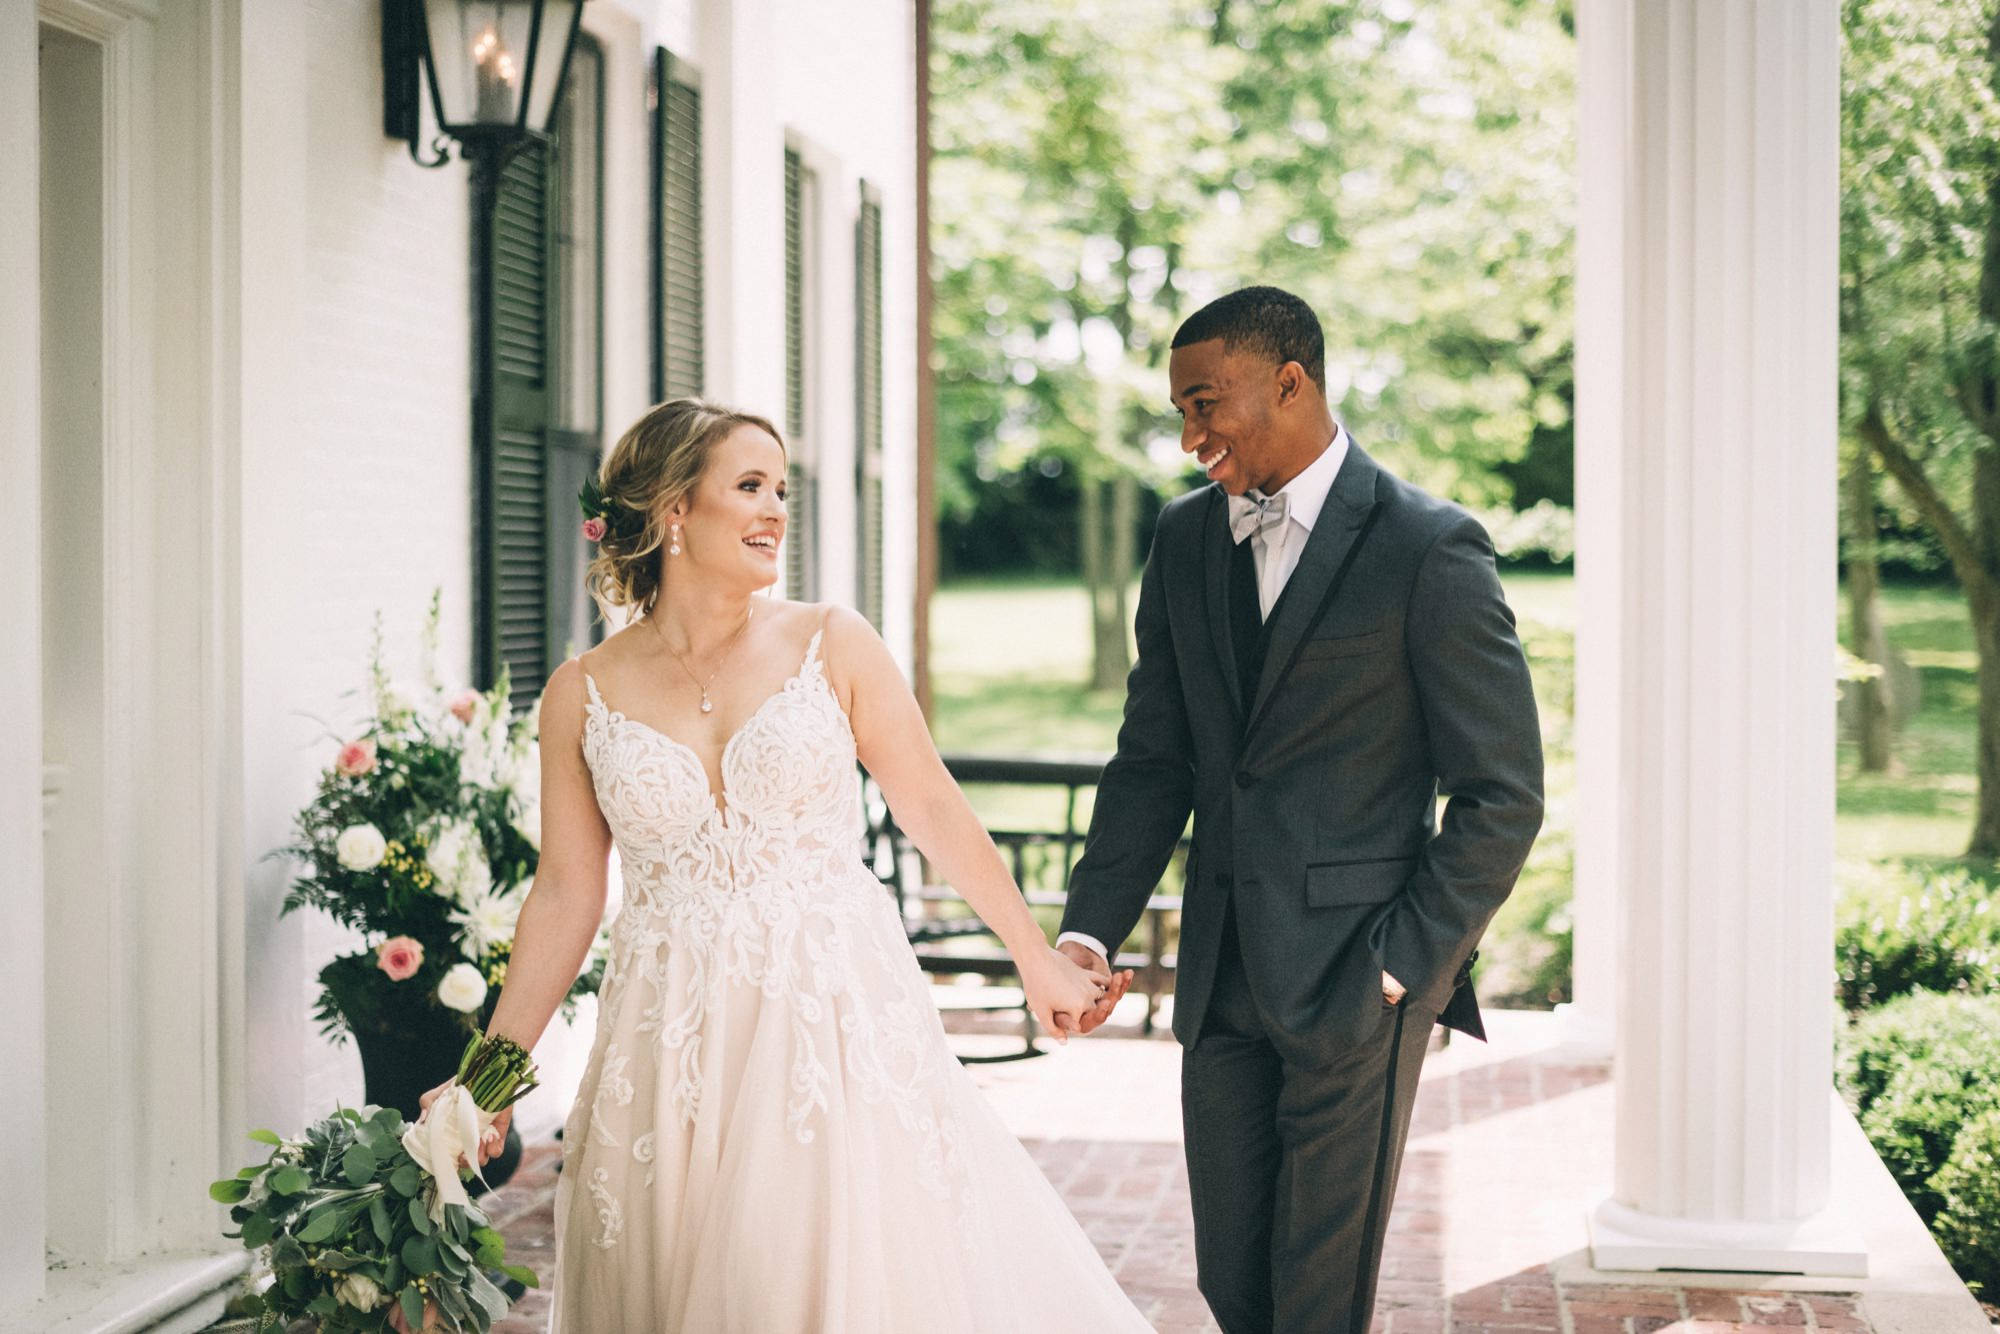 Annastasia and Taylor hold hands. They are on the porch of Ashford Acres Inn. You can see a white column, black shutters,  white walls and green trees in the background. her bouquet is full of blush and ivory flowers and a variety of greenery. Her dress has lace and sweet hear neckline. He is wearing a gray suit.